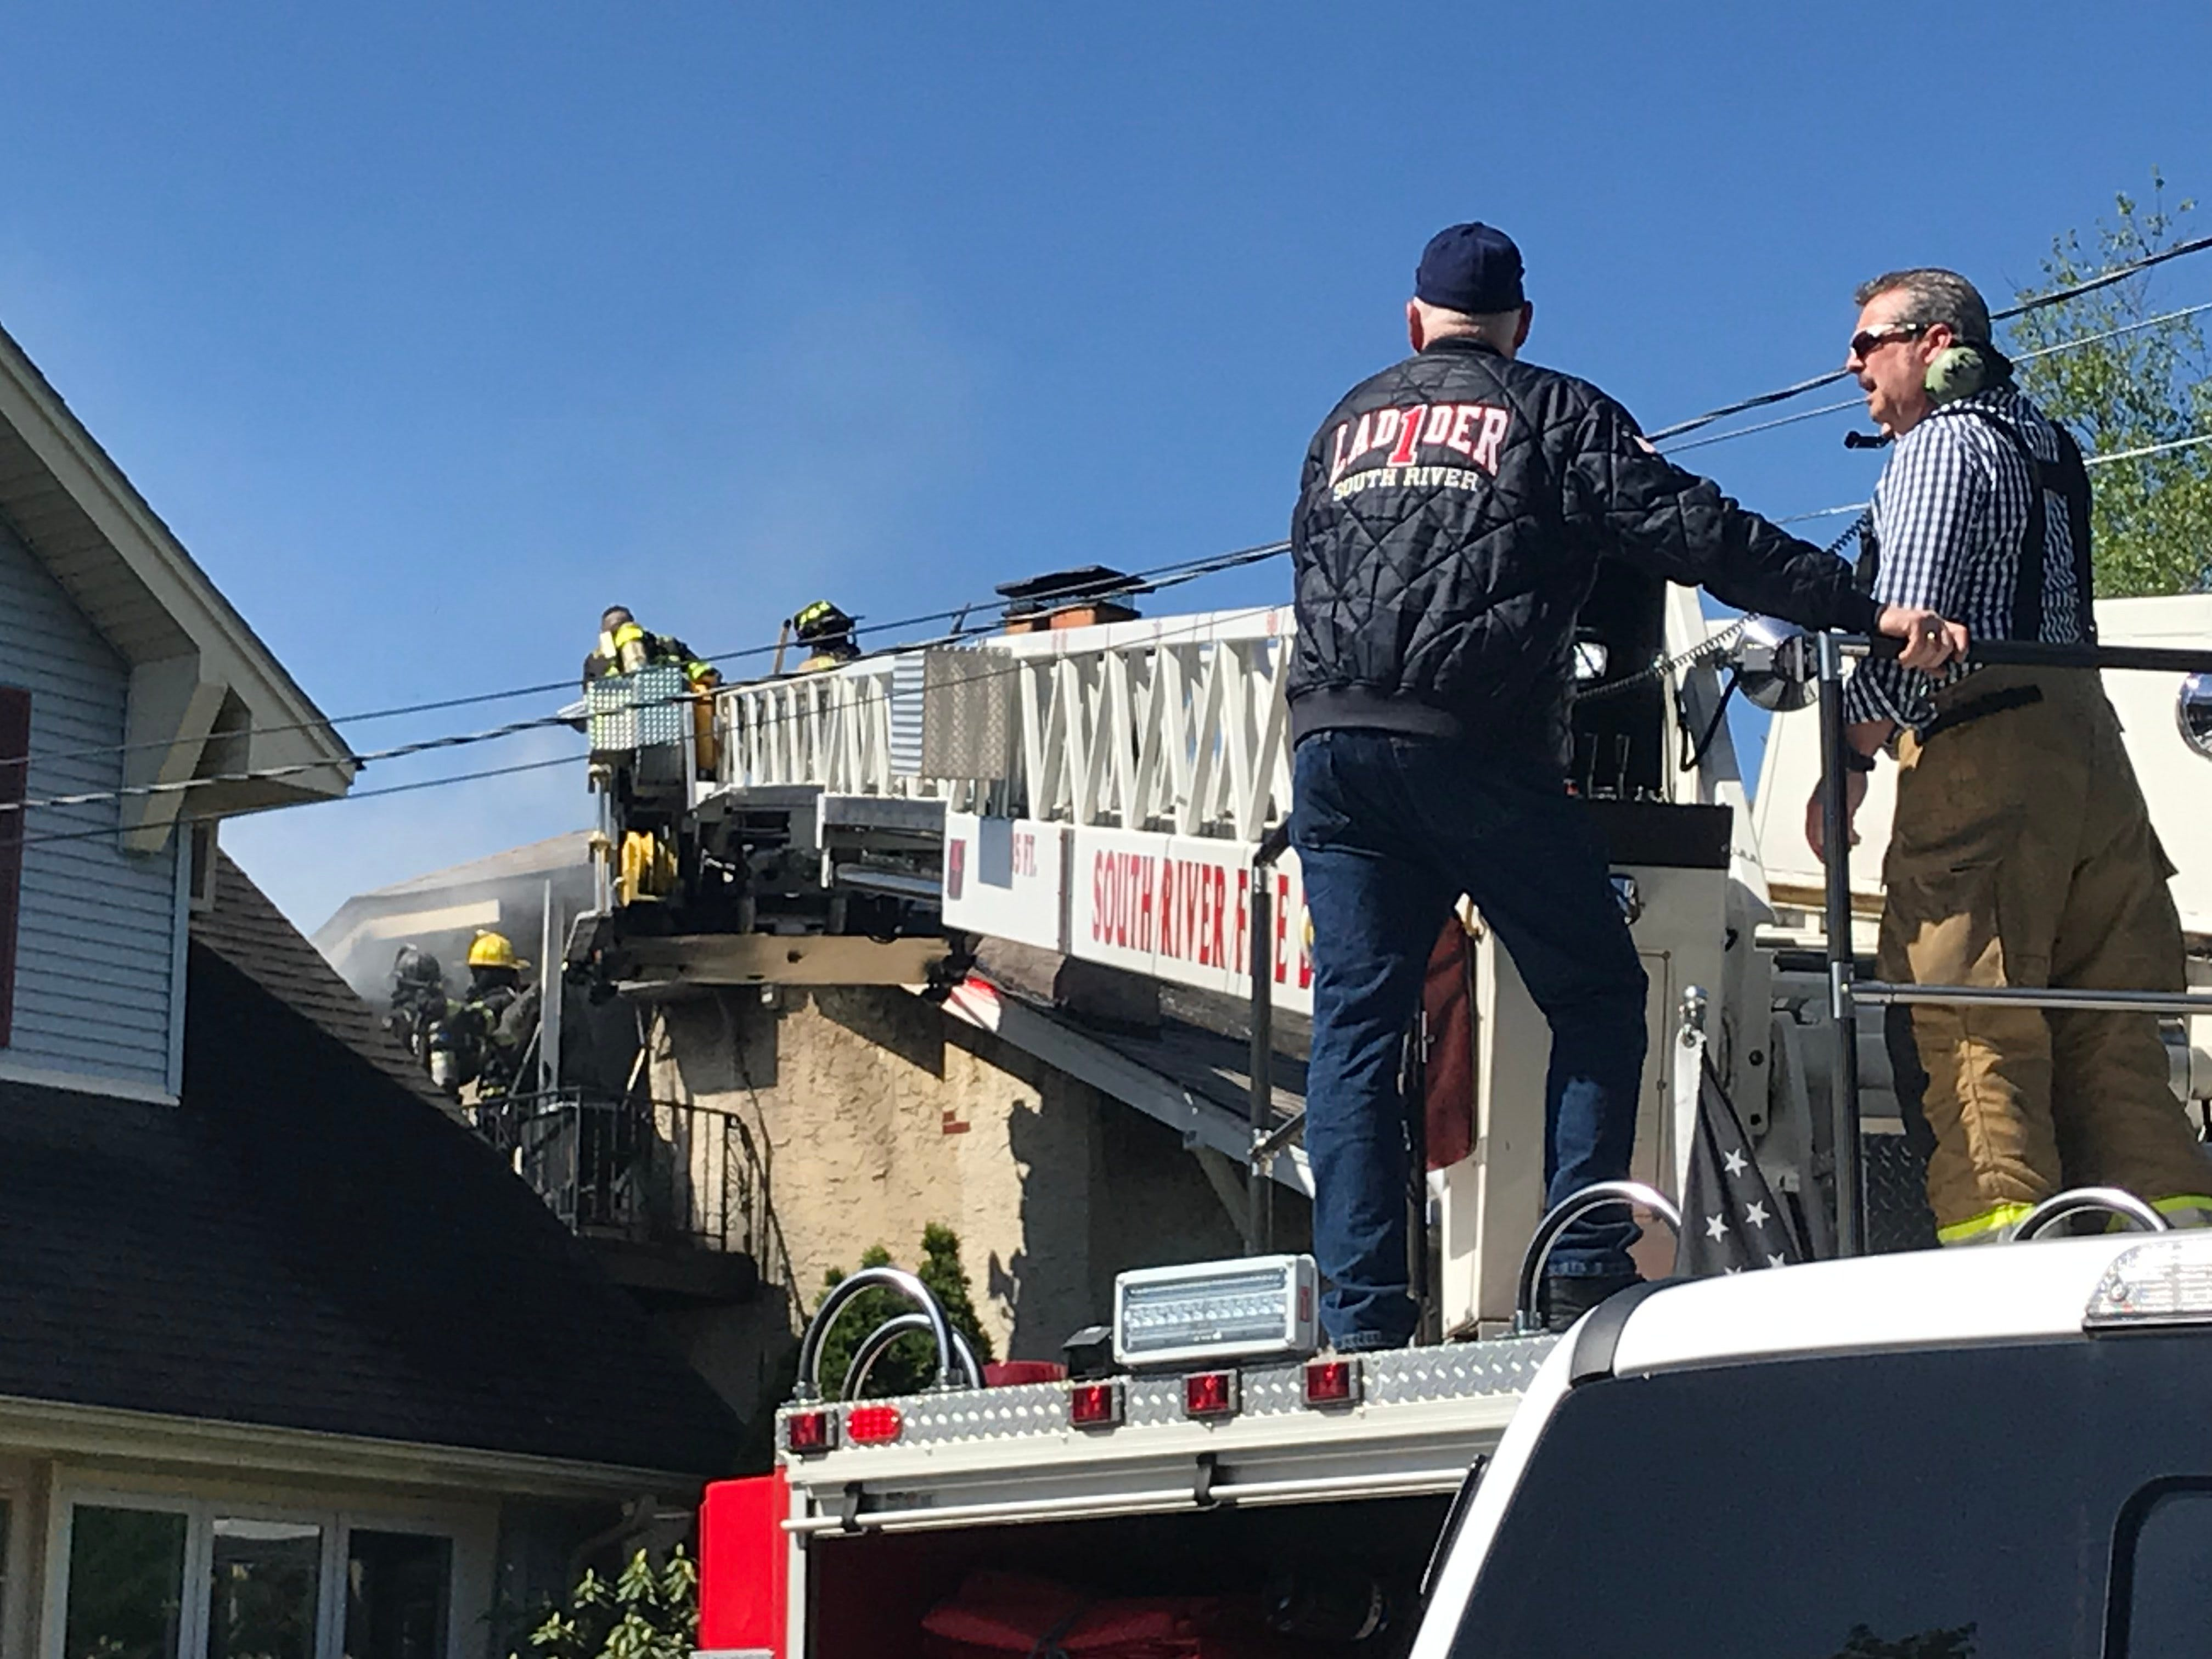 Firefighters battled a fire on Devoe Street in South River Monday morning.